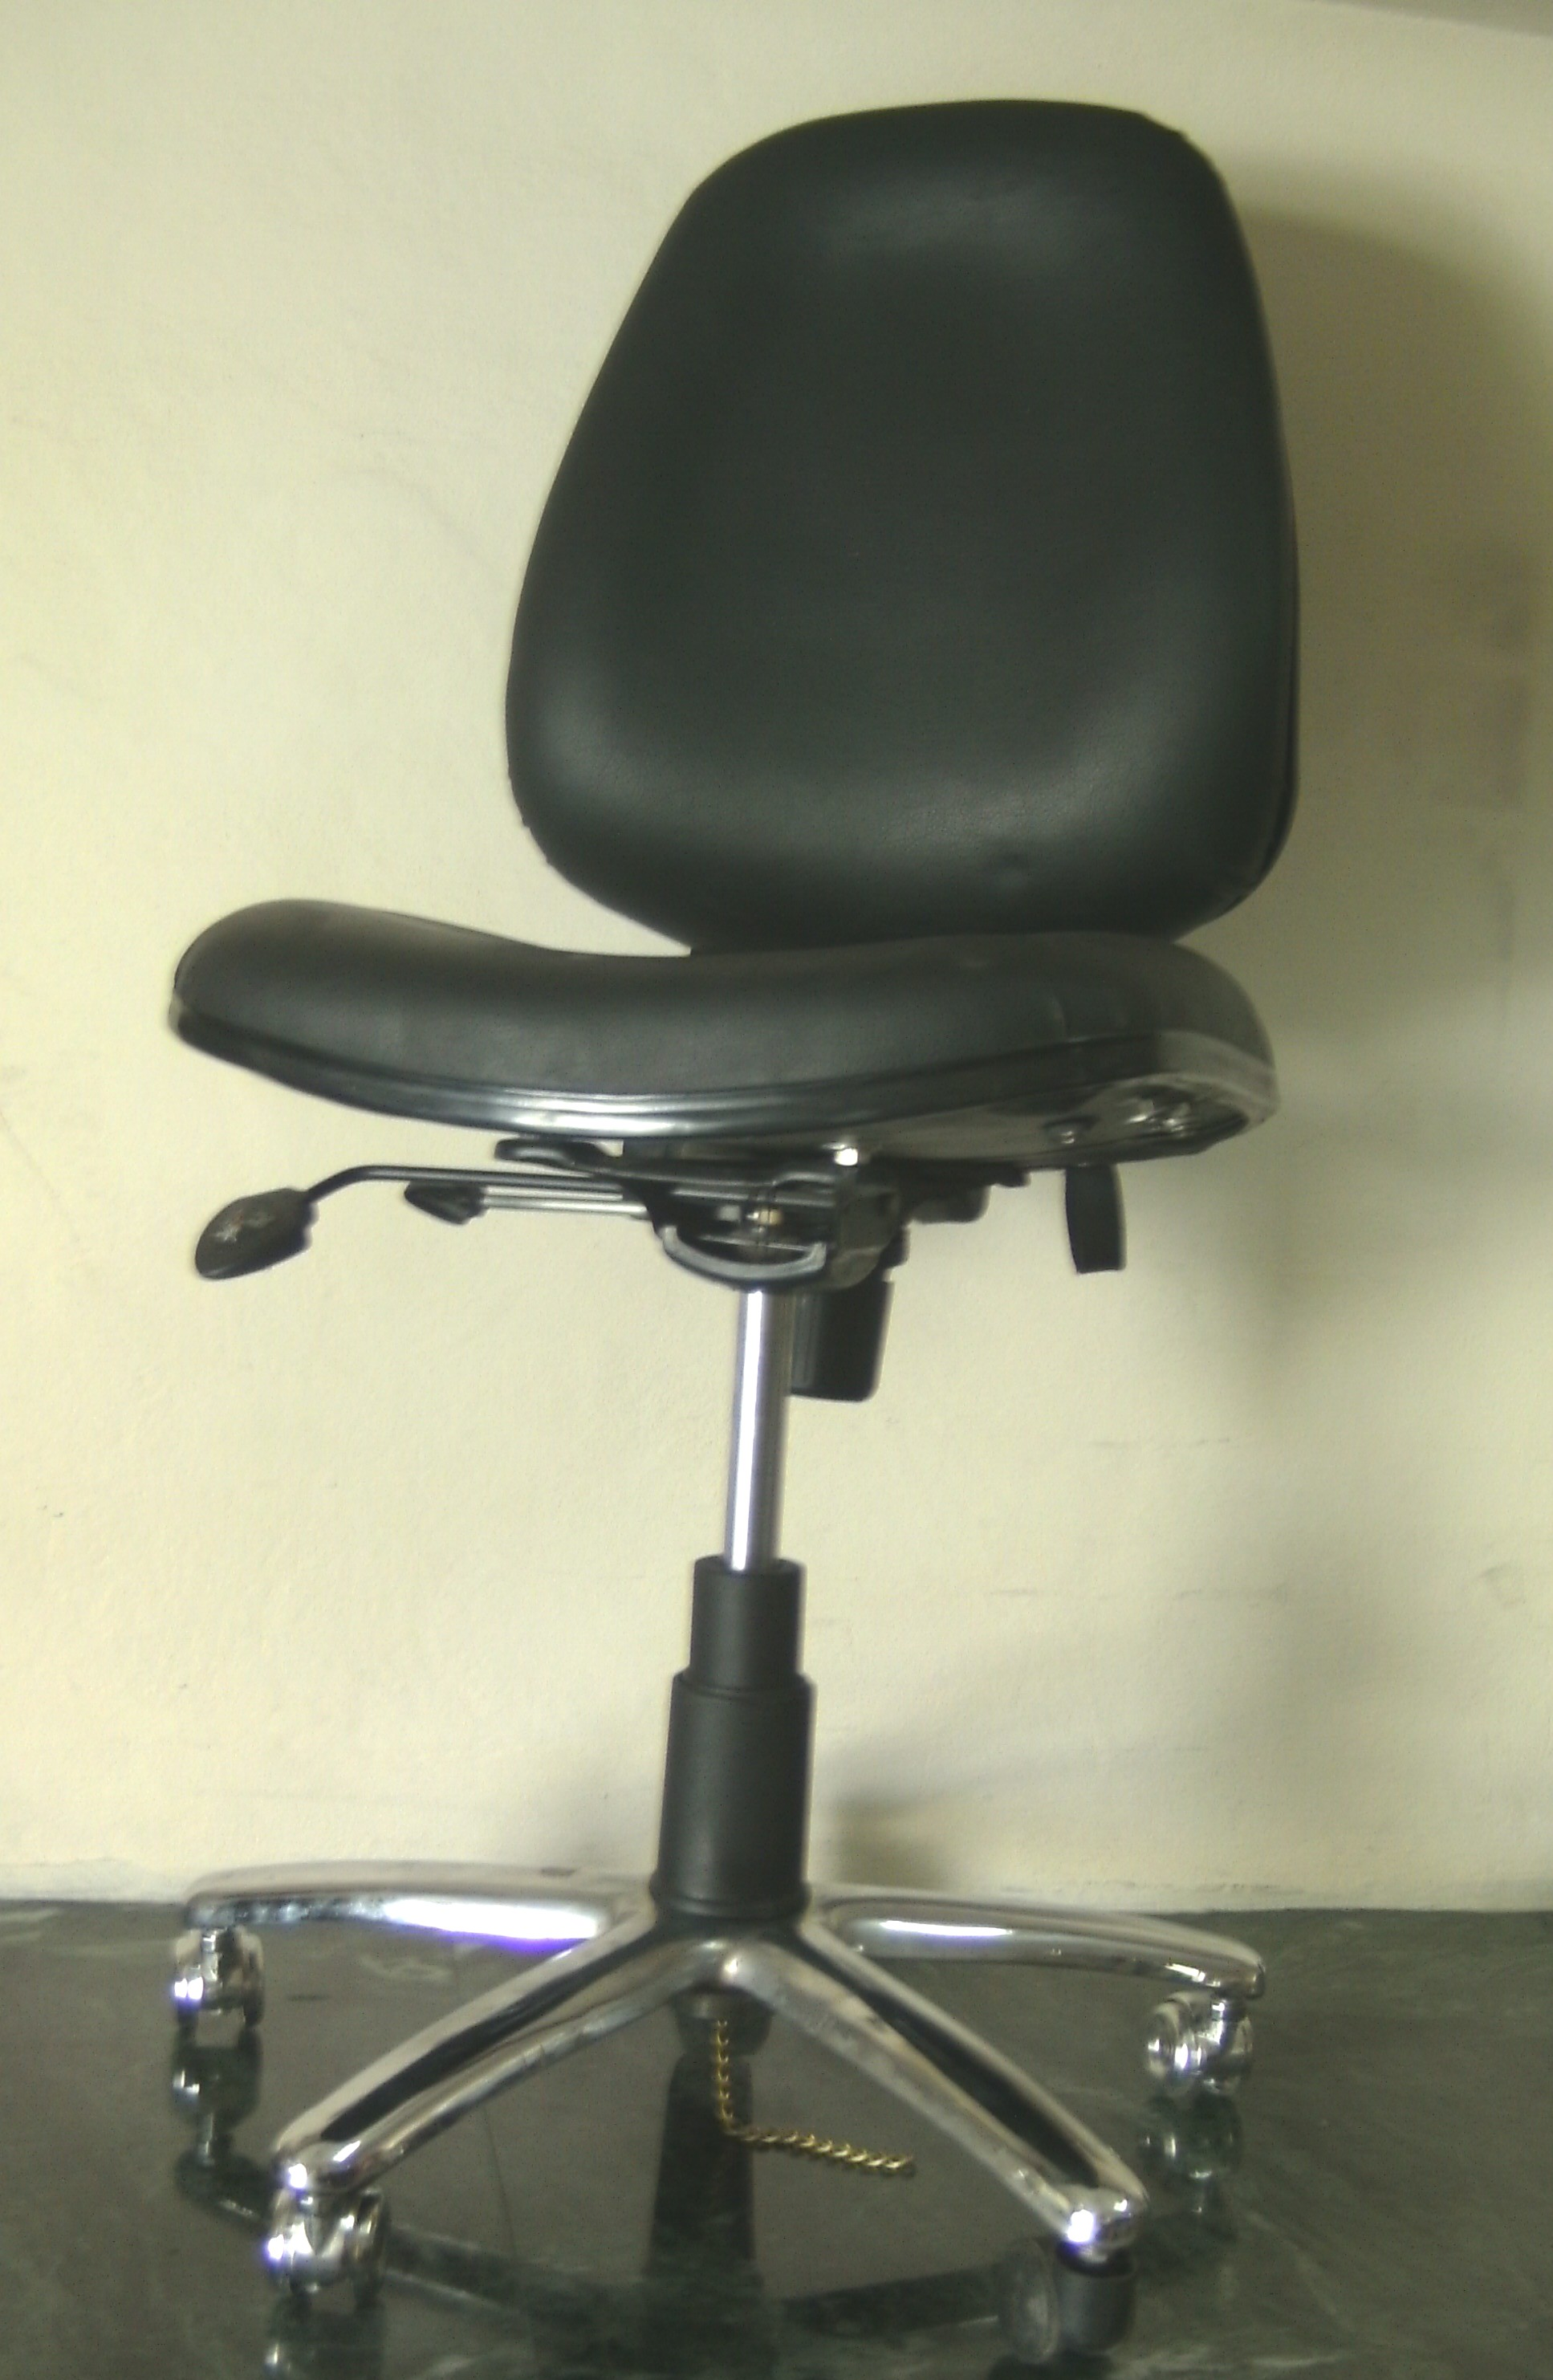 antistatic-chair-without-arms